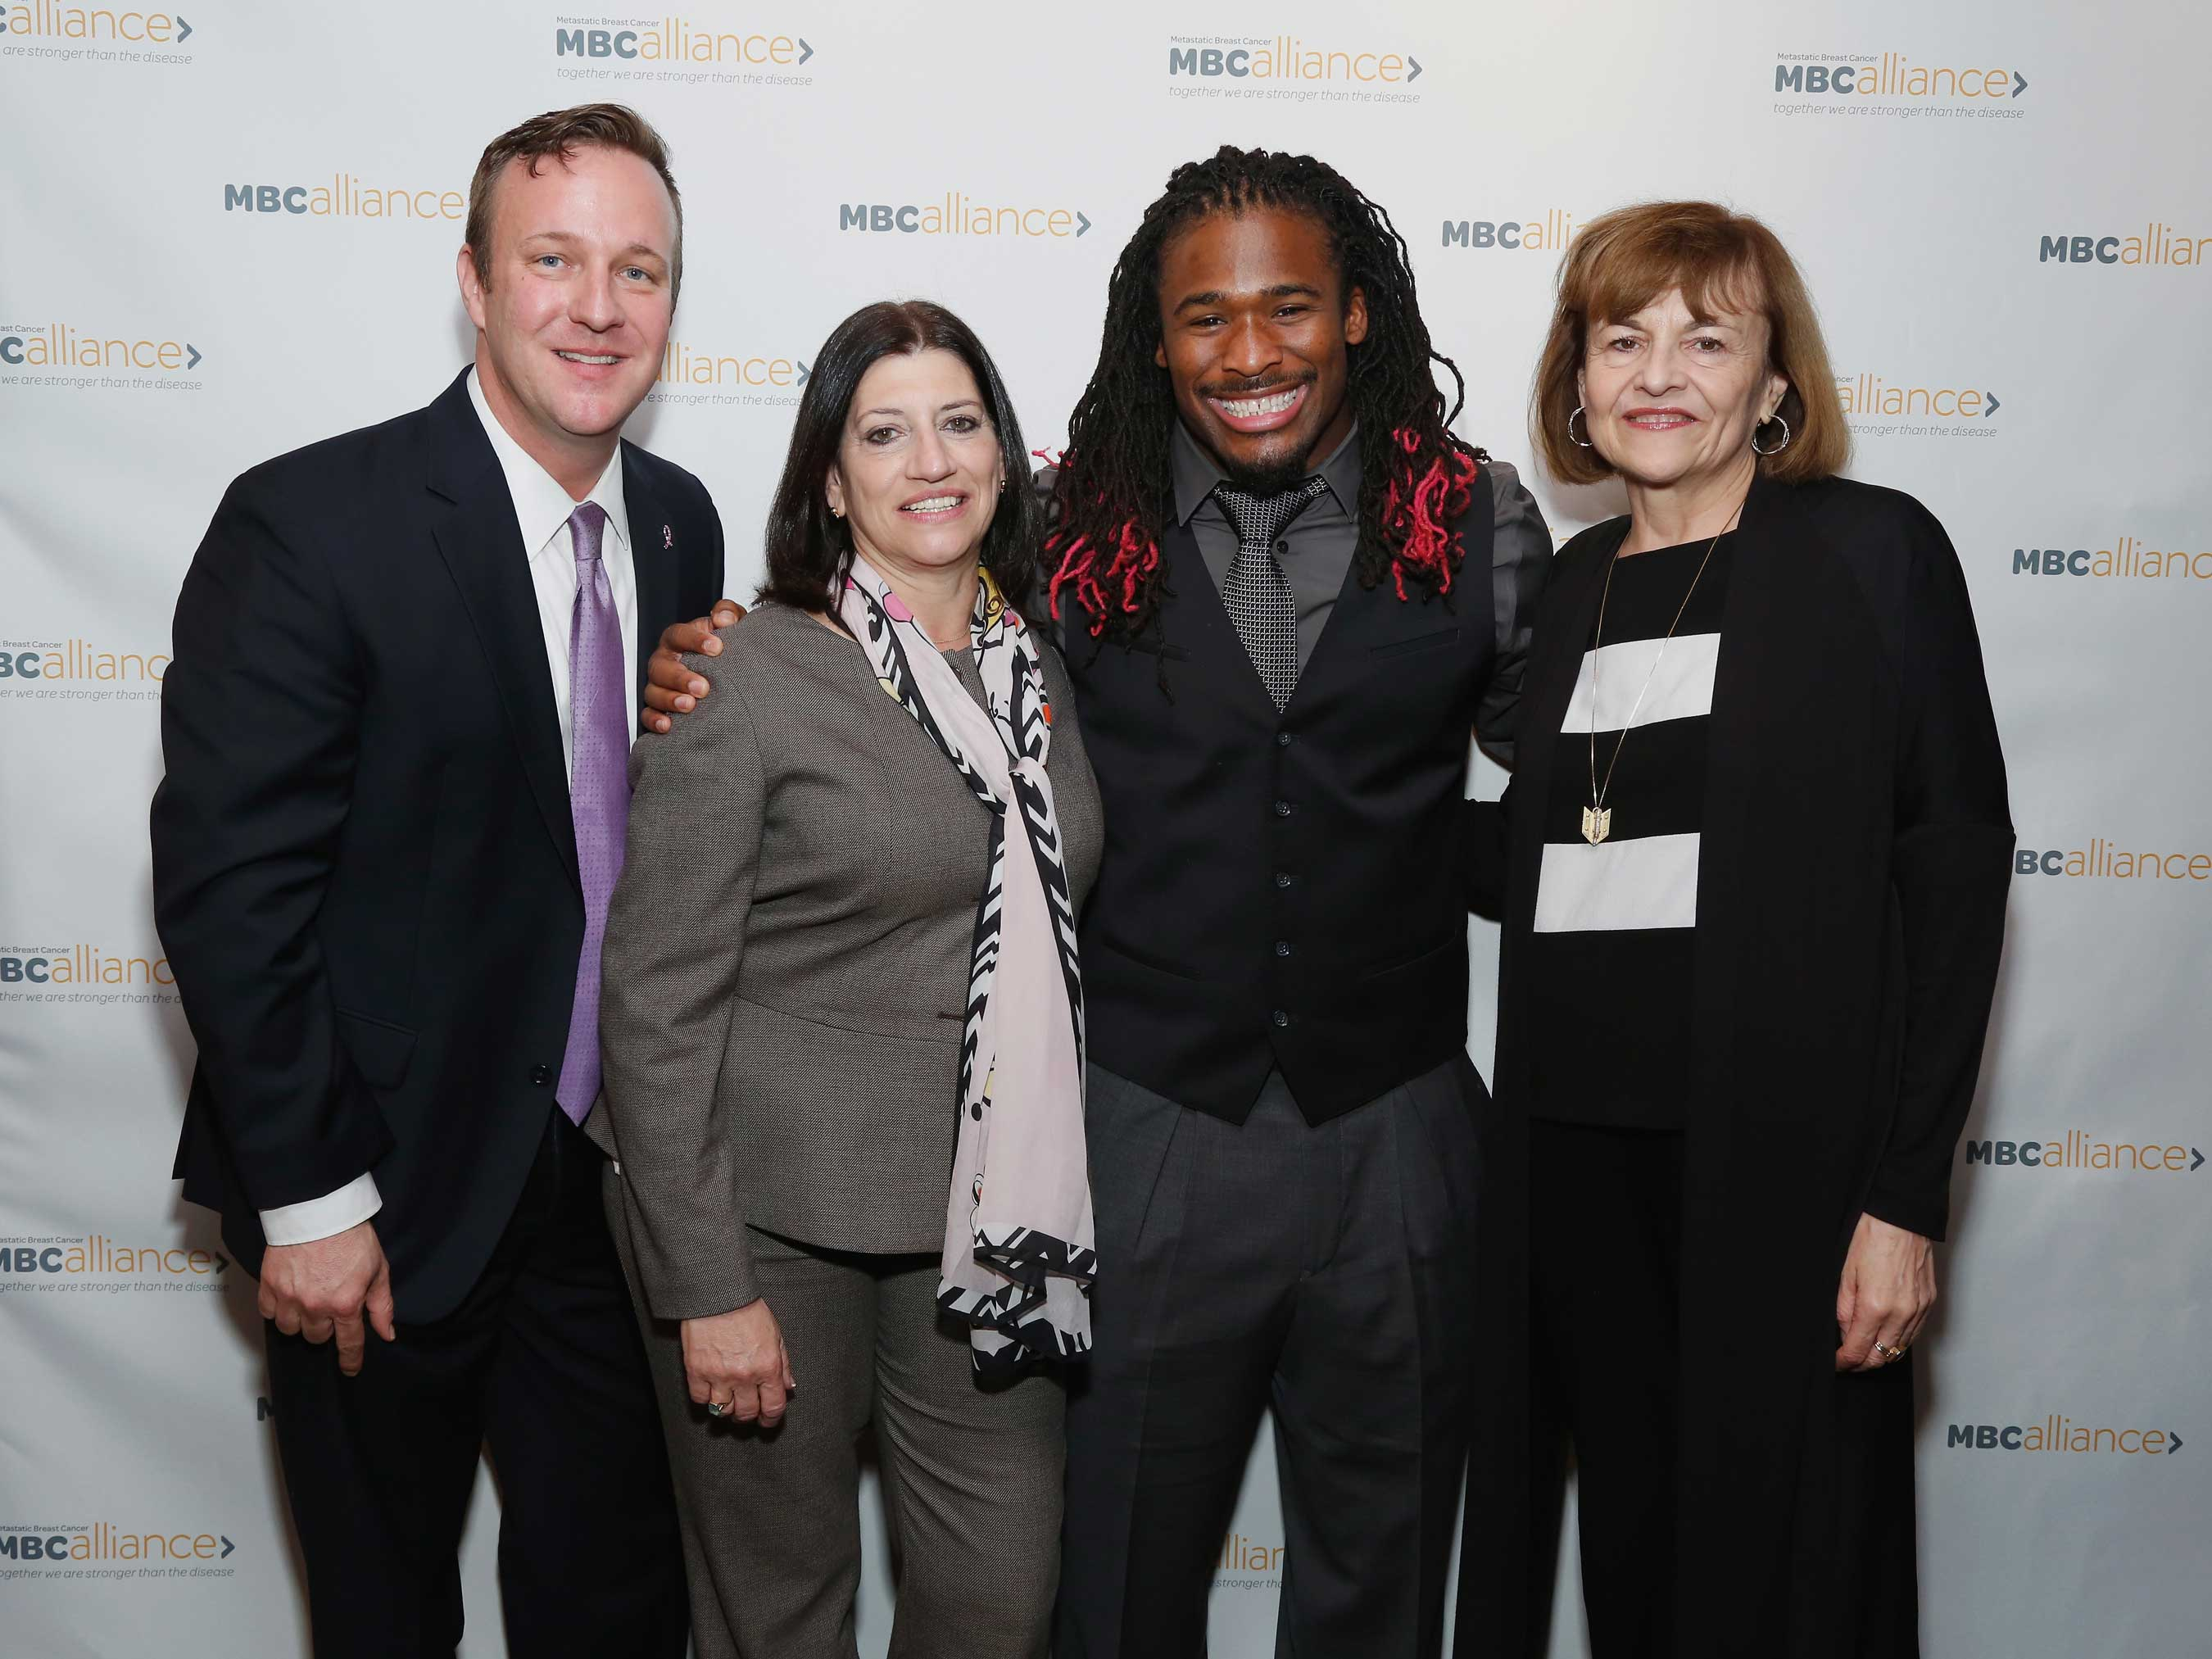 Professional Football Player DeAngelo Williams joins the Metastatic Breast Cancer Alliance's efforts in memory of his mother Sandra Hill who passed away from metastatic breast cancer in May 2014.